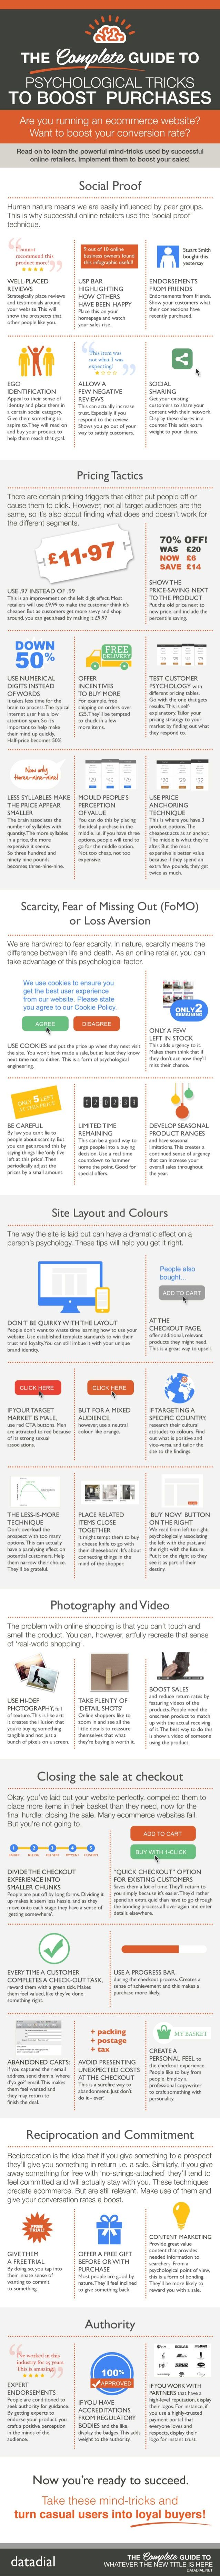 Psychological Strategies to Increase eCommerce Sales #Infographic